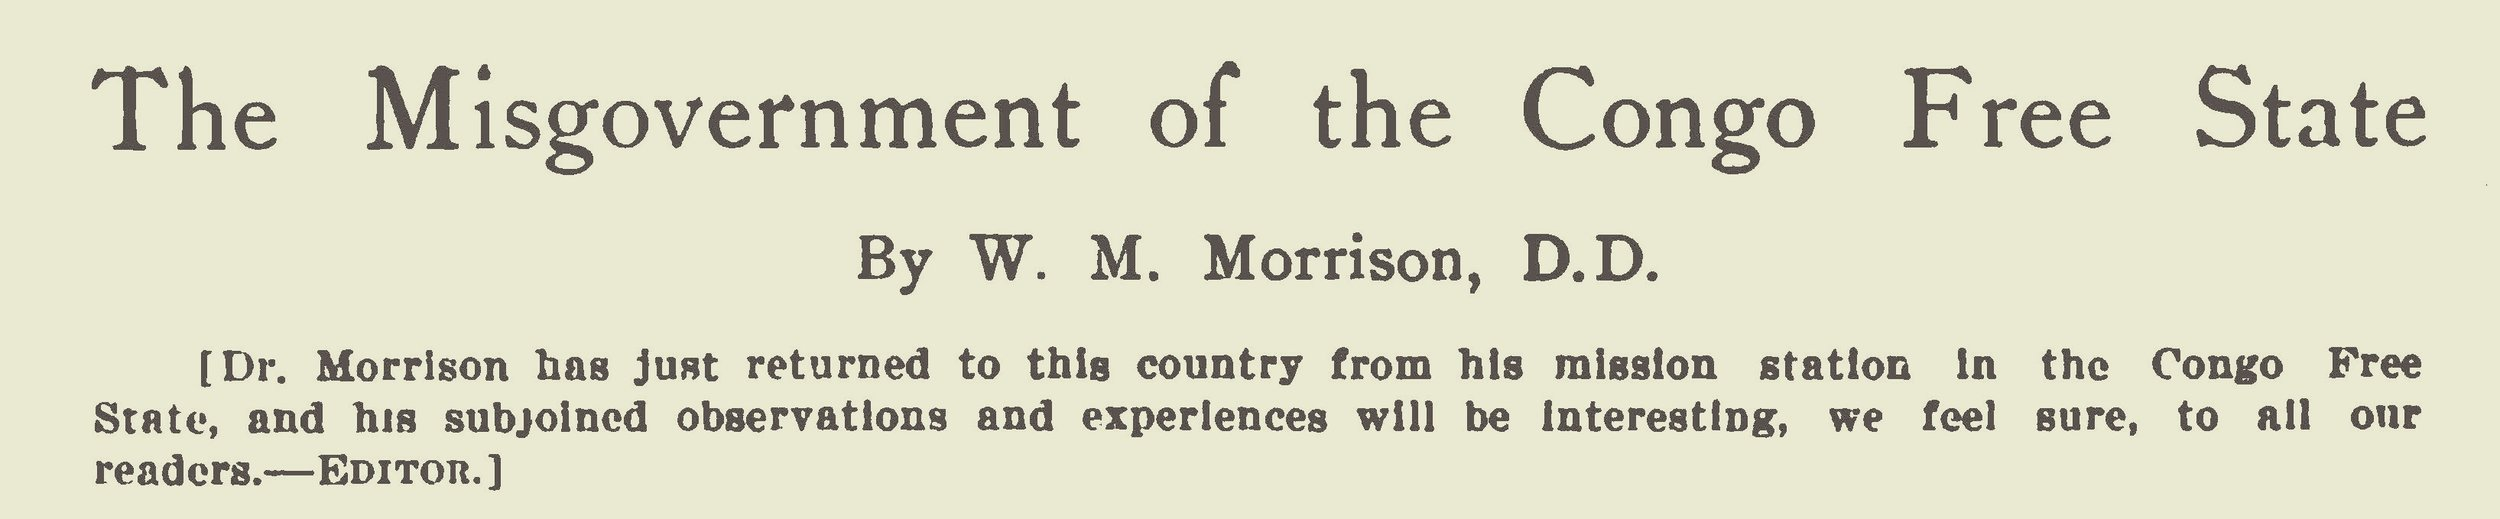 Morrison, William McCutchan, The Misgovernment of the Congo Free State Title Page.jpg